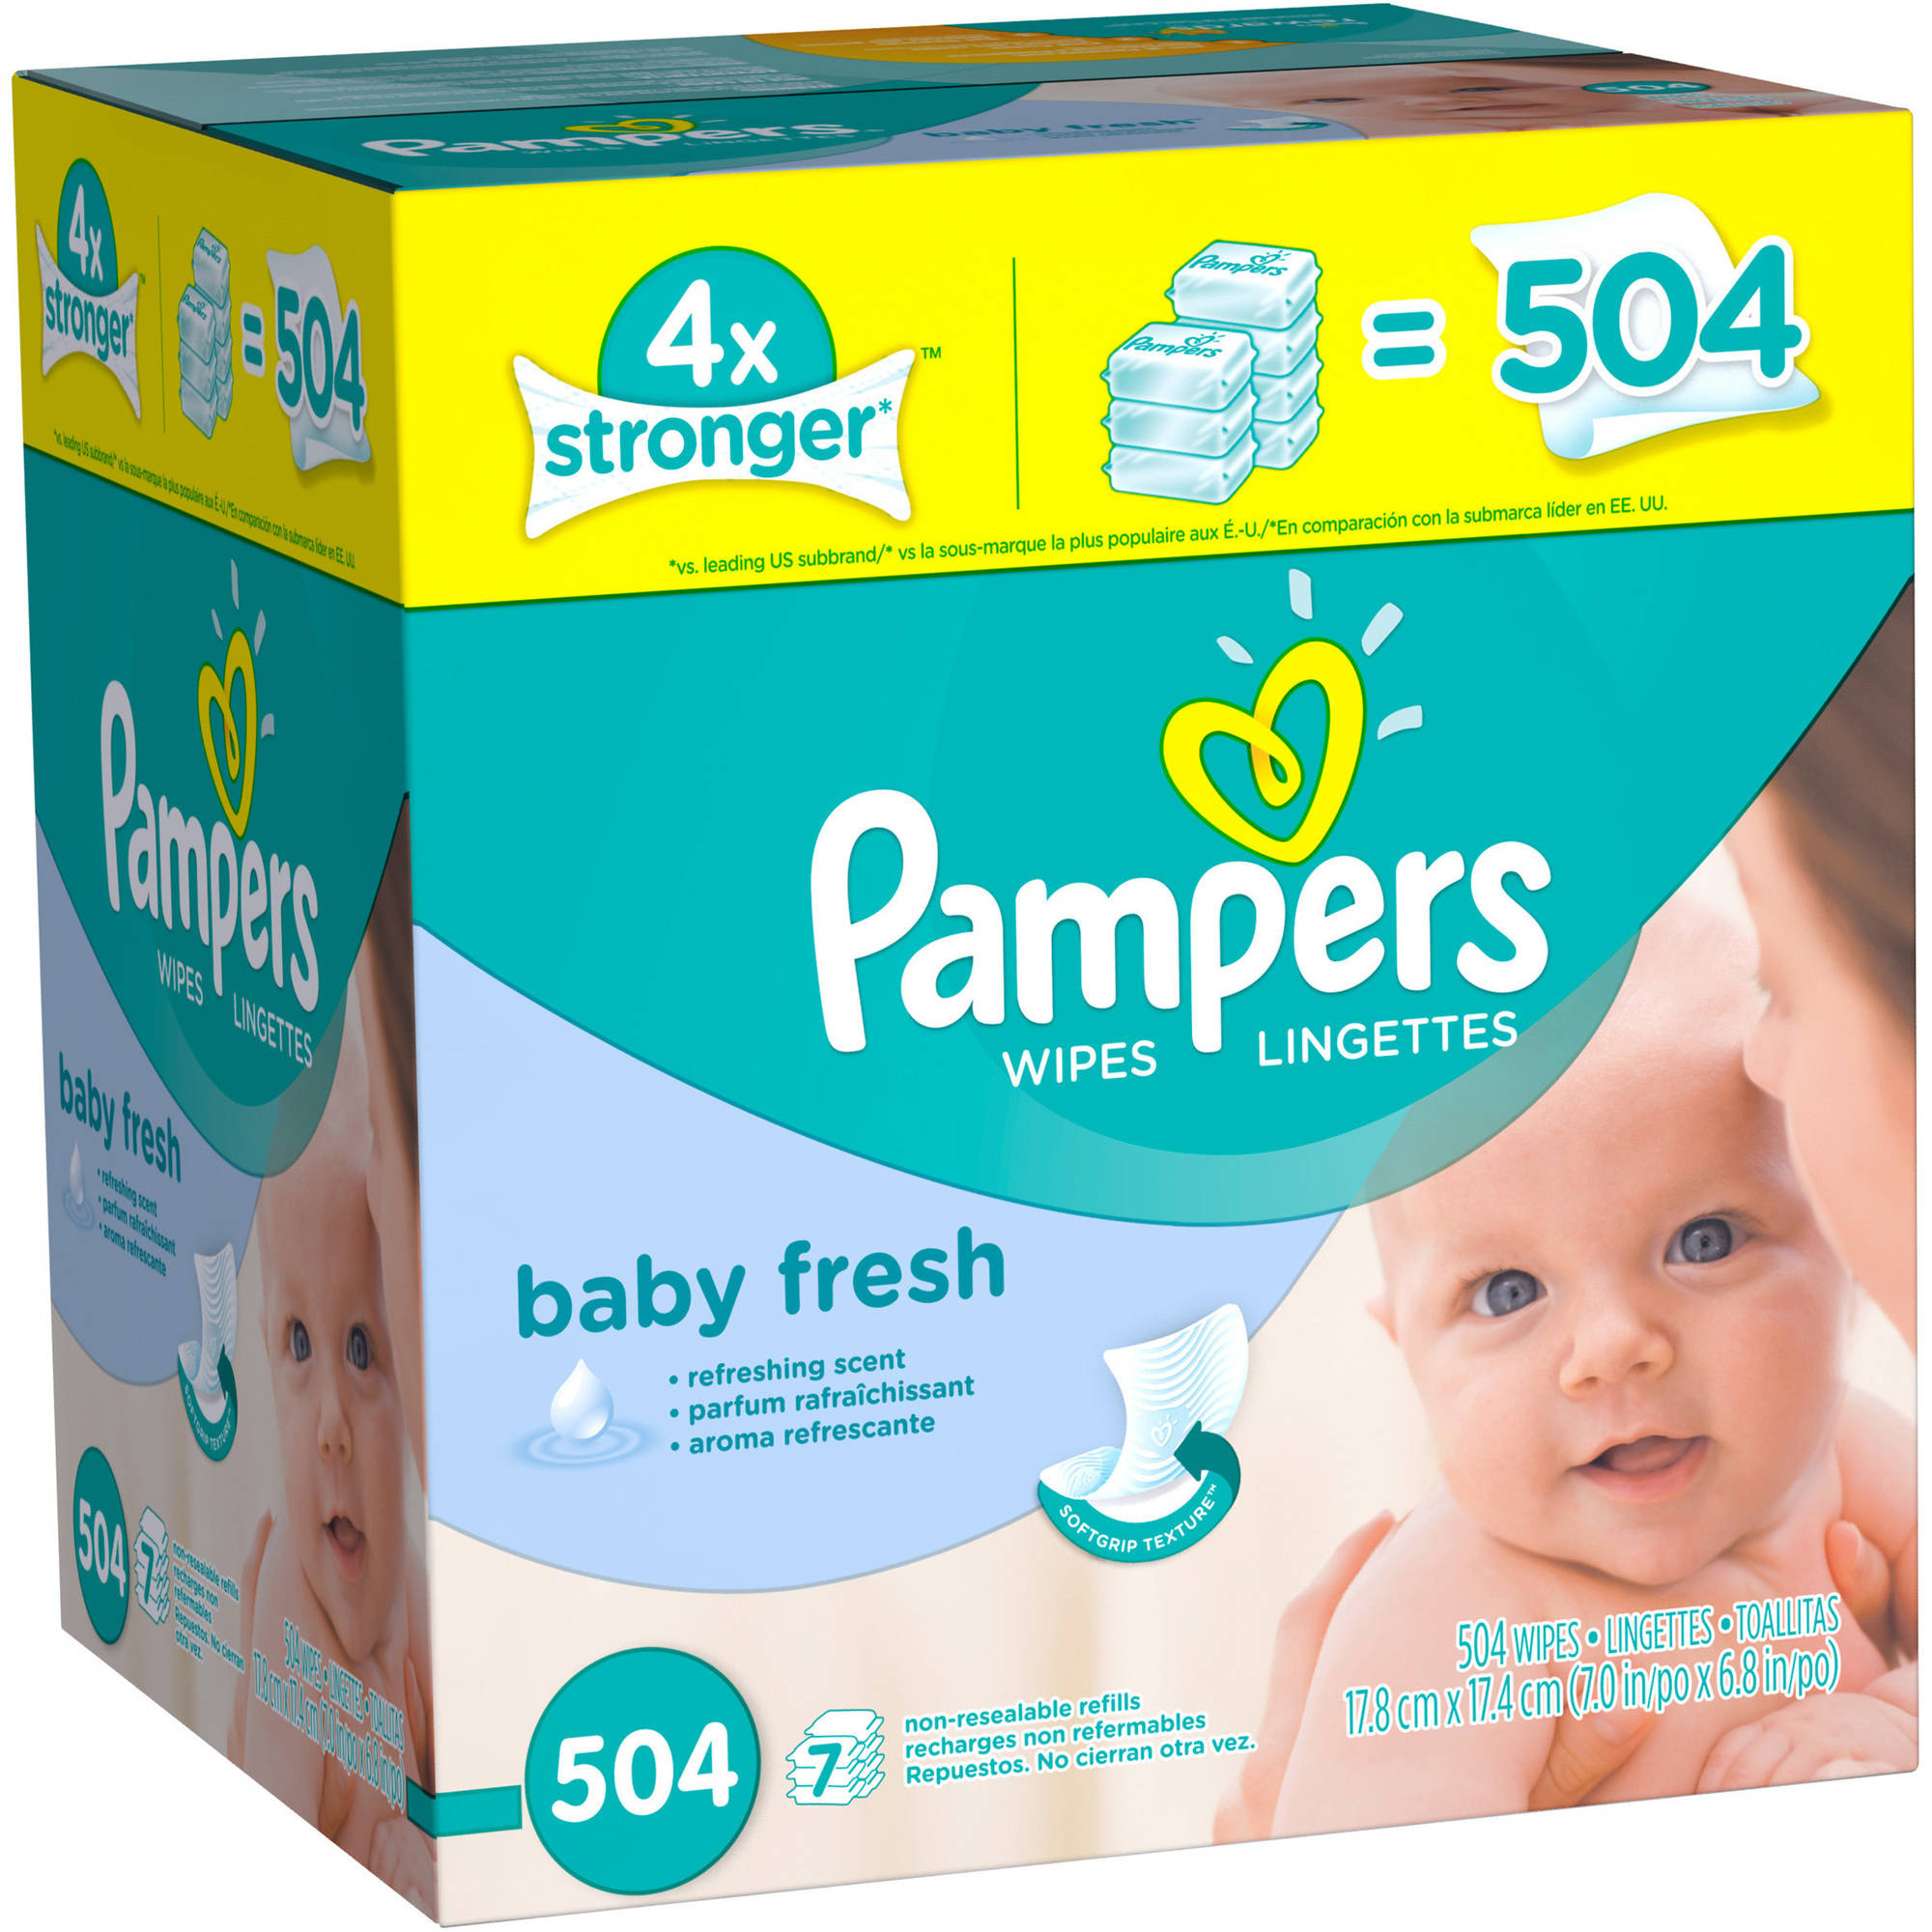 Pampers Baby Fresh Baby Wipes, 504 sheets